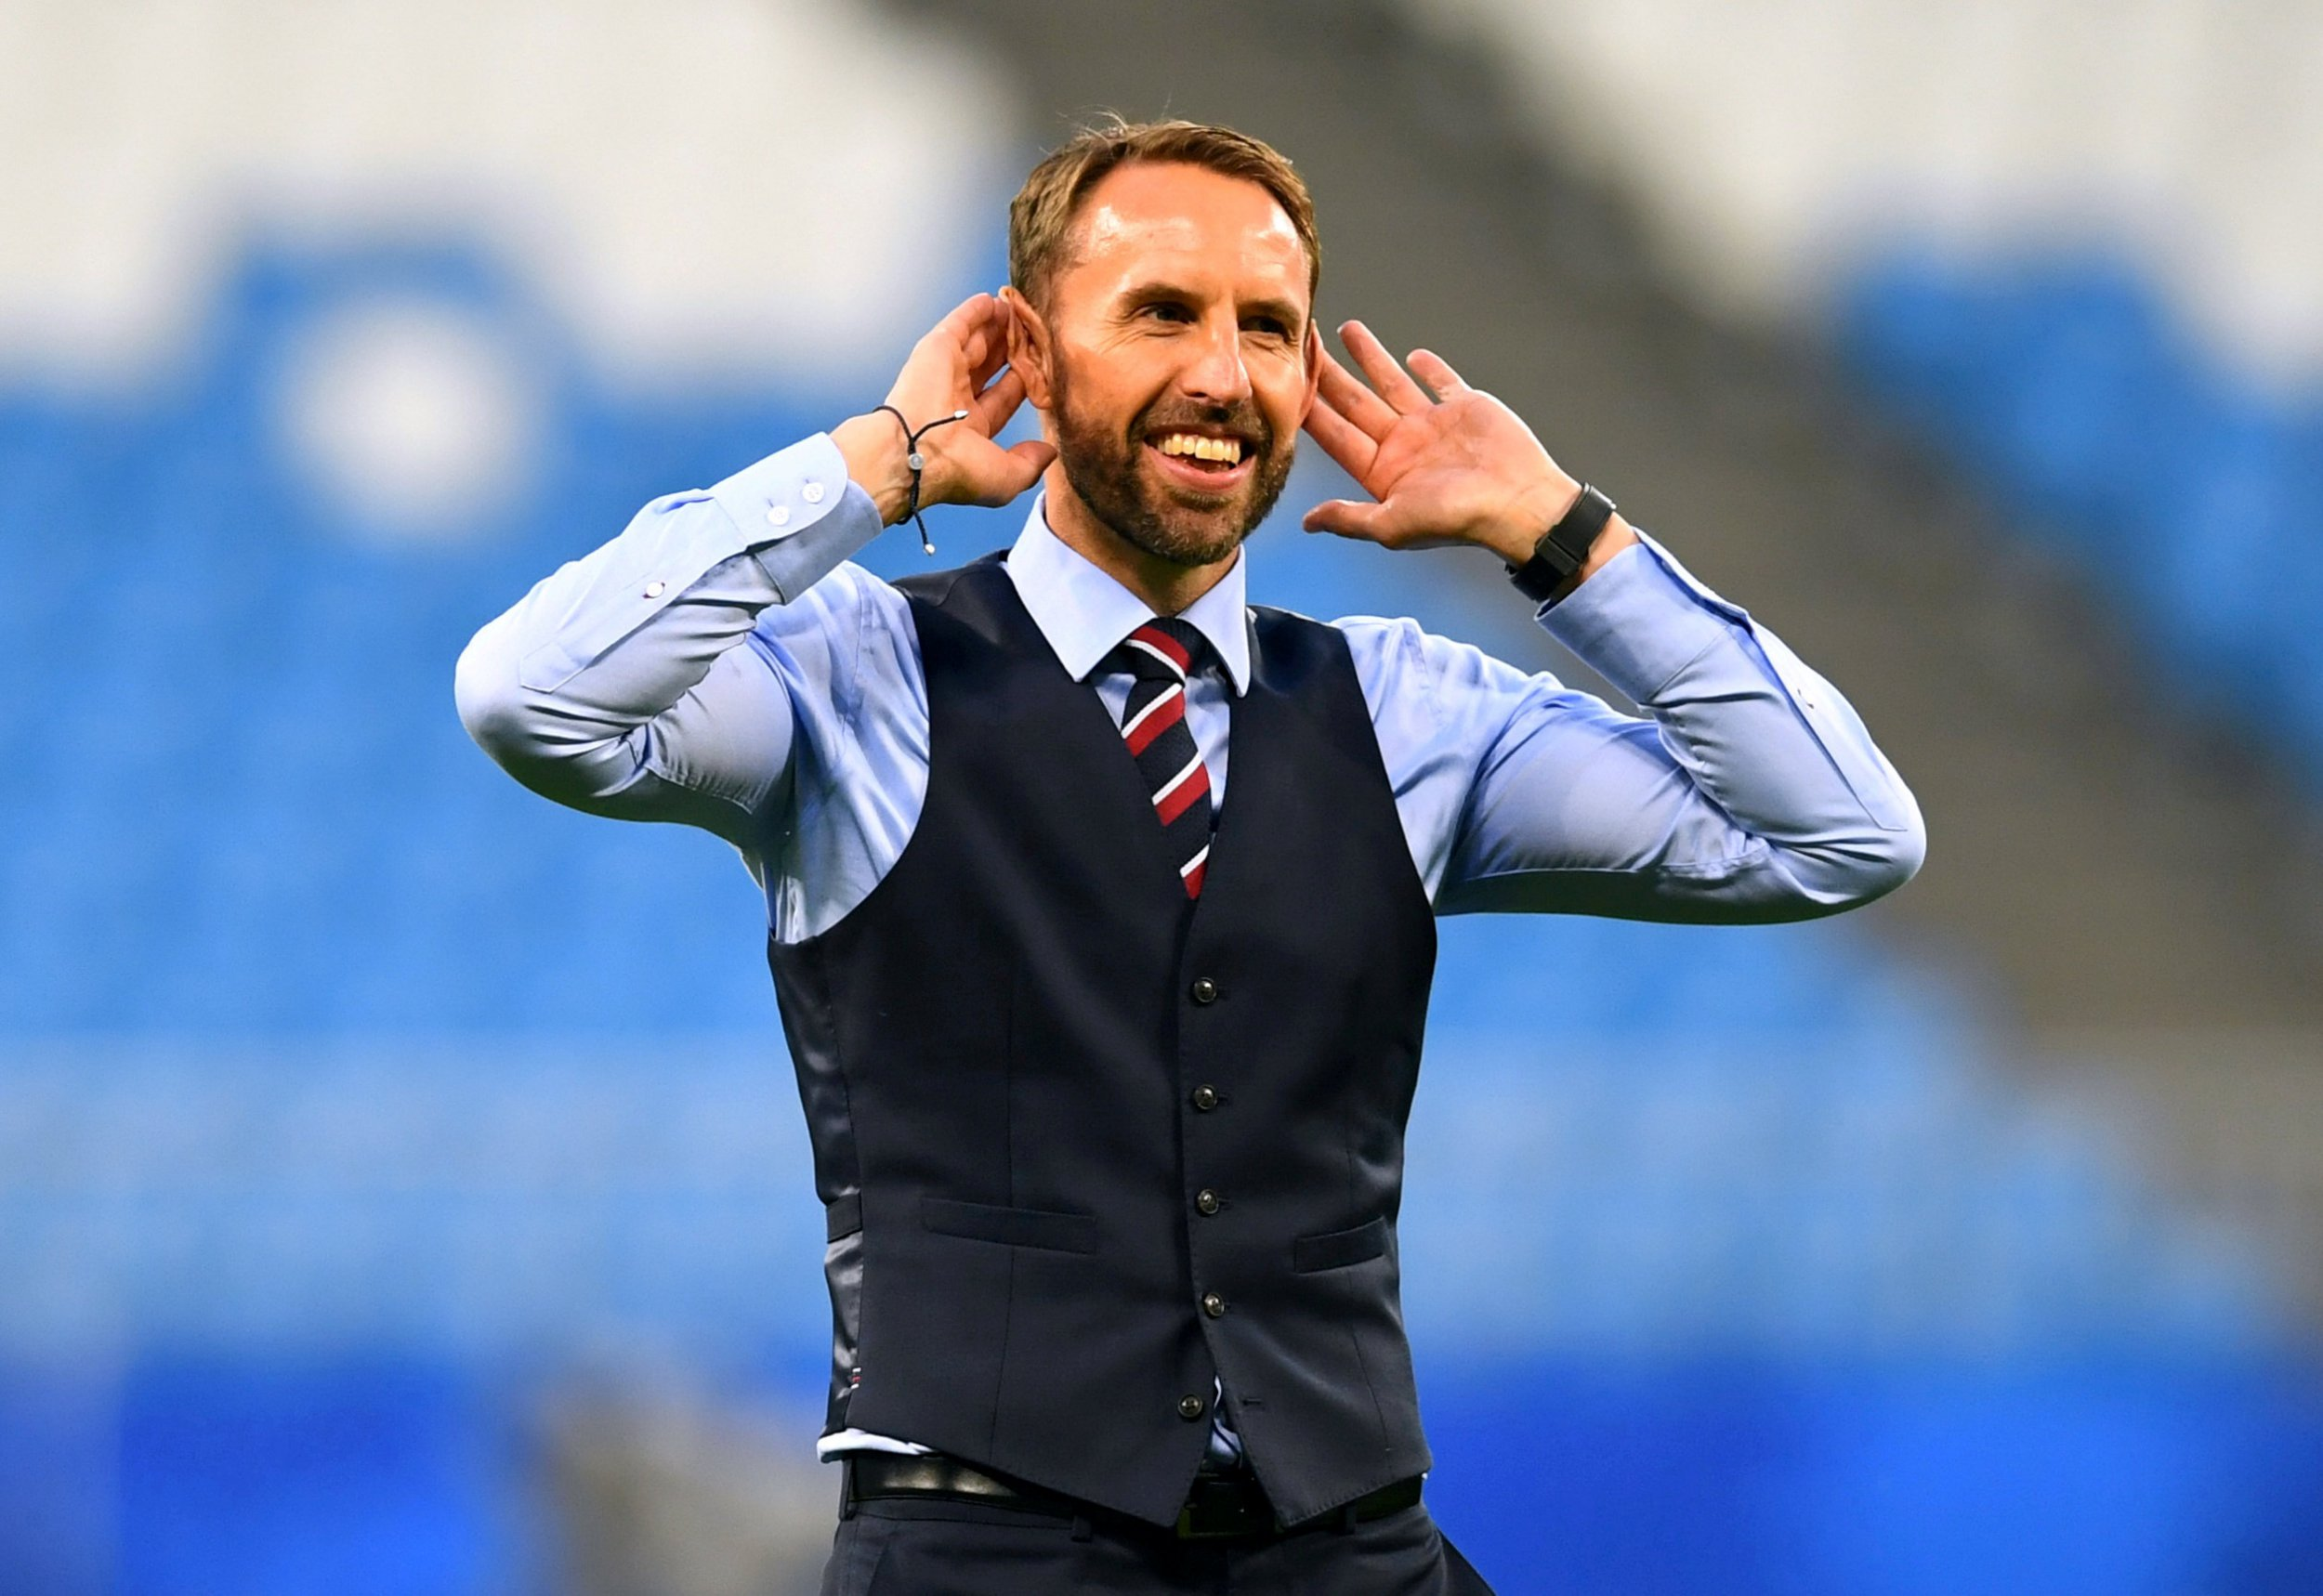 FILE PHOTO: World Cup - Quarter Final - Sweden vs England - Samara Arena, Samara, Russia - July 7, 2018 England manager Gareth Southgate salutes their fans after the match REUTERS/Dylan Martinez/File Photo